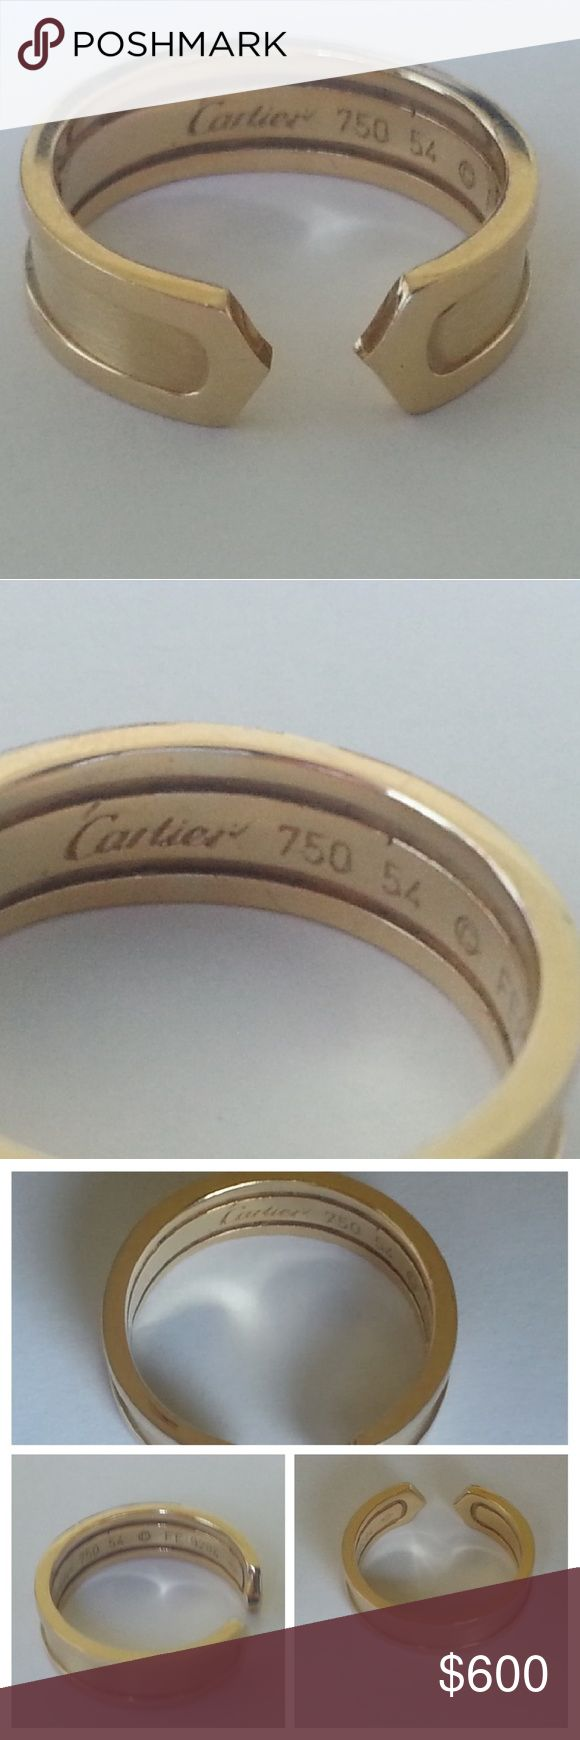 Authentic Cartier Double C 18k Y Gold Beautiful condition, very lightly pre-loved, minor surface scratches, no paperwork, box, pouch ECT. PM CONCIERGE verifiers authenticity and condition free along with Free shipping on ALL purchases $500 and up, so this is a no risk purchase! Cartier Jewelry Rings